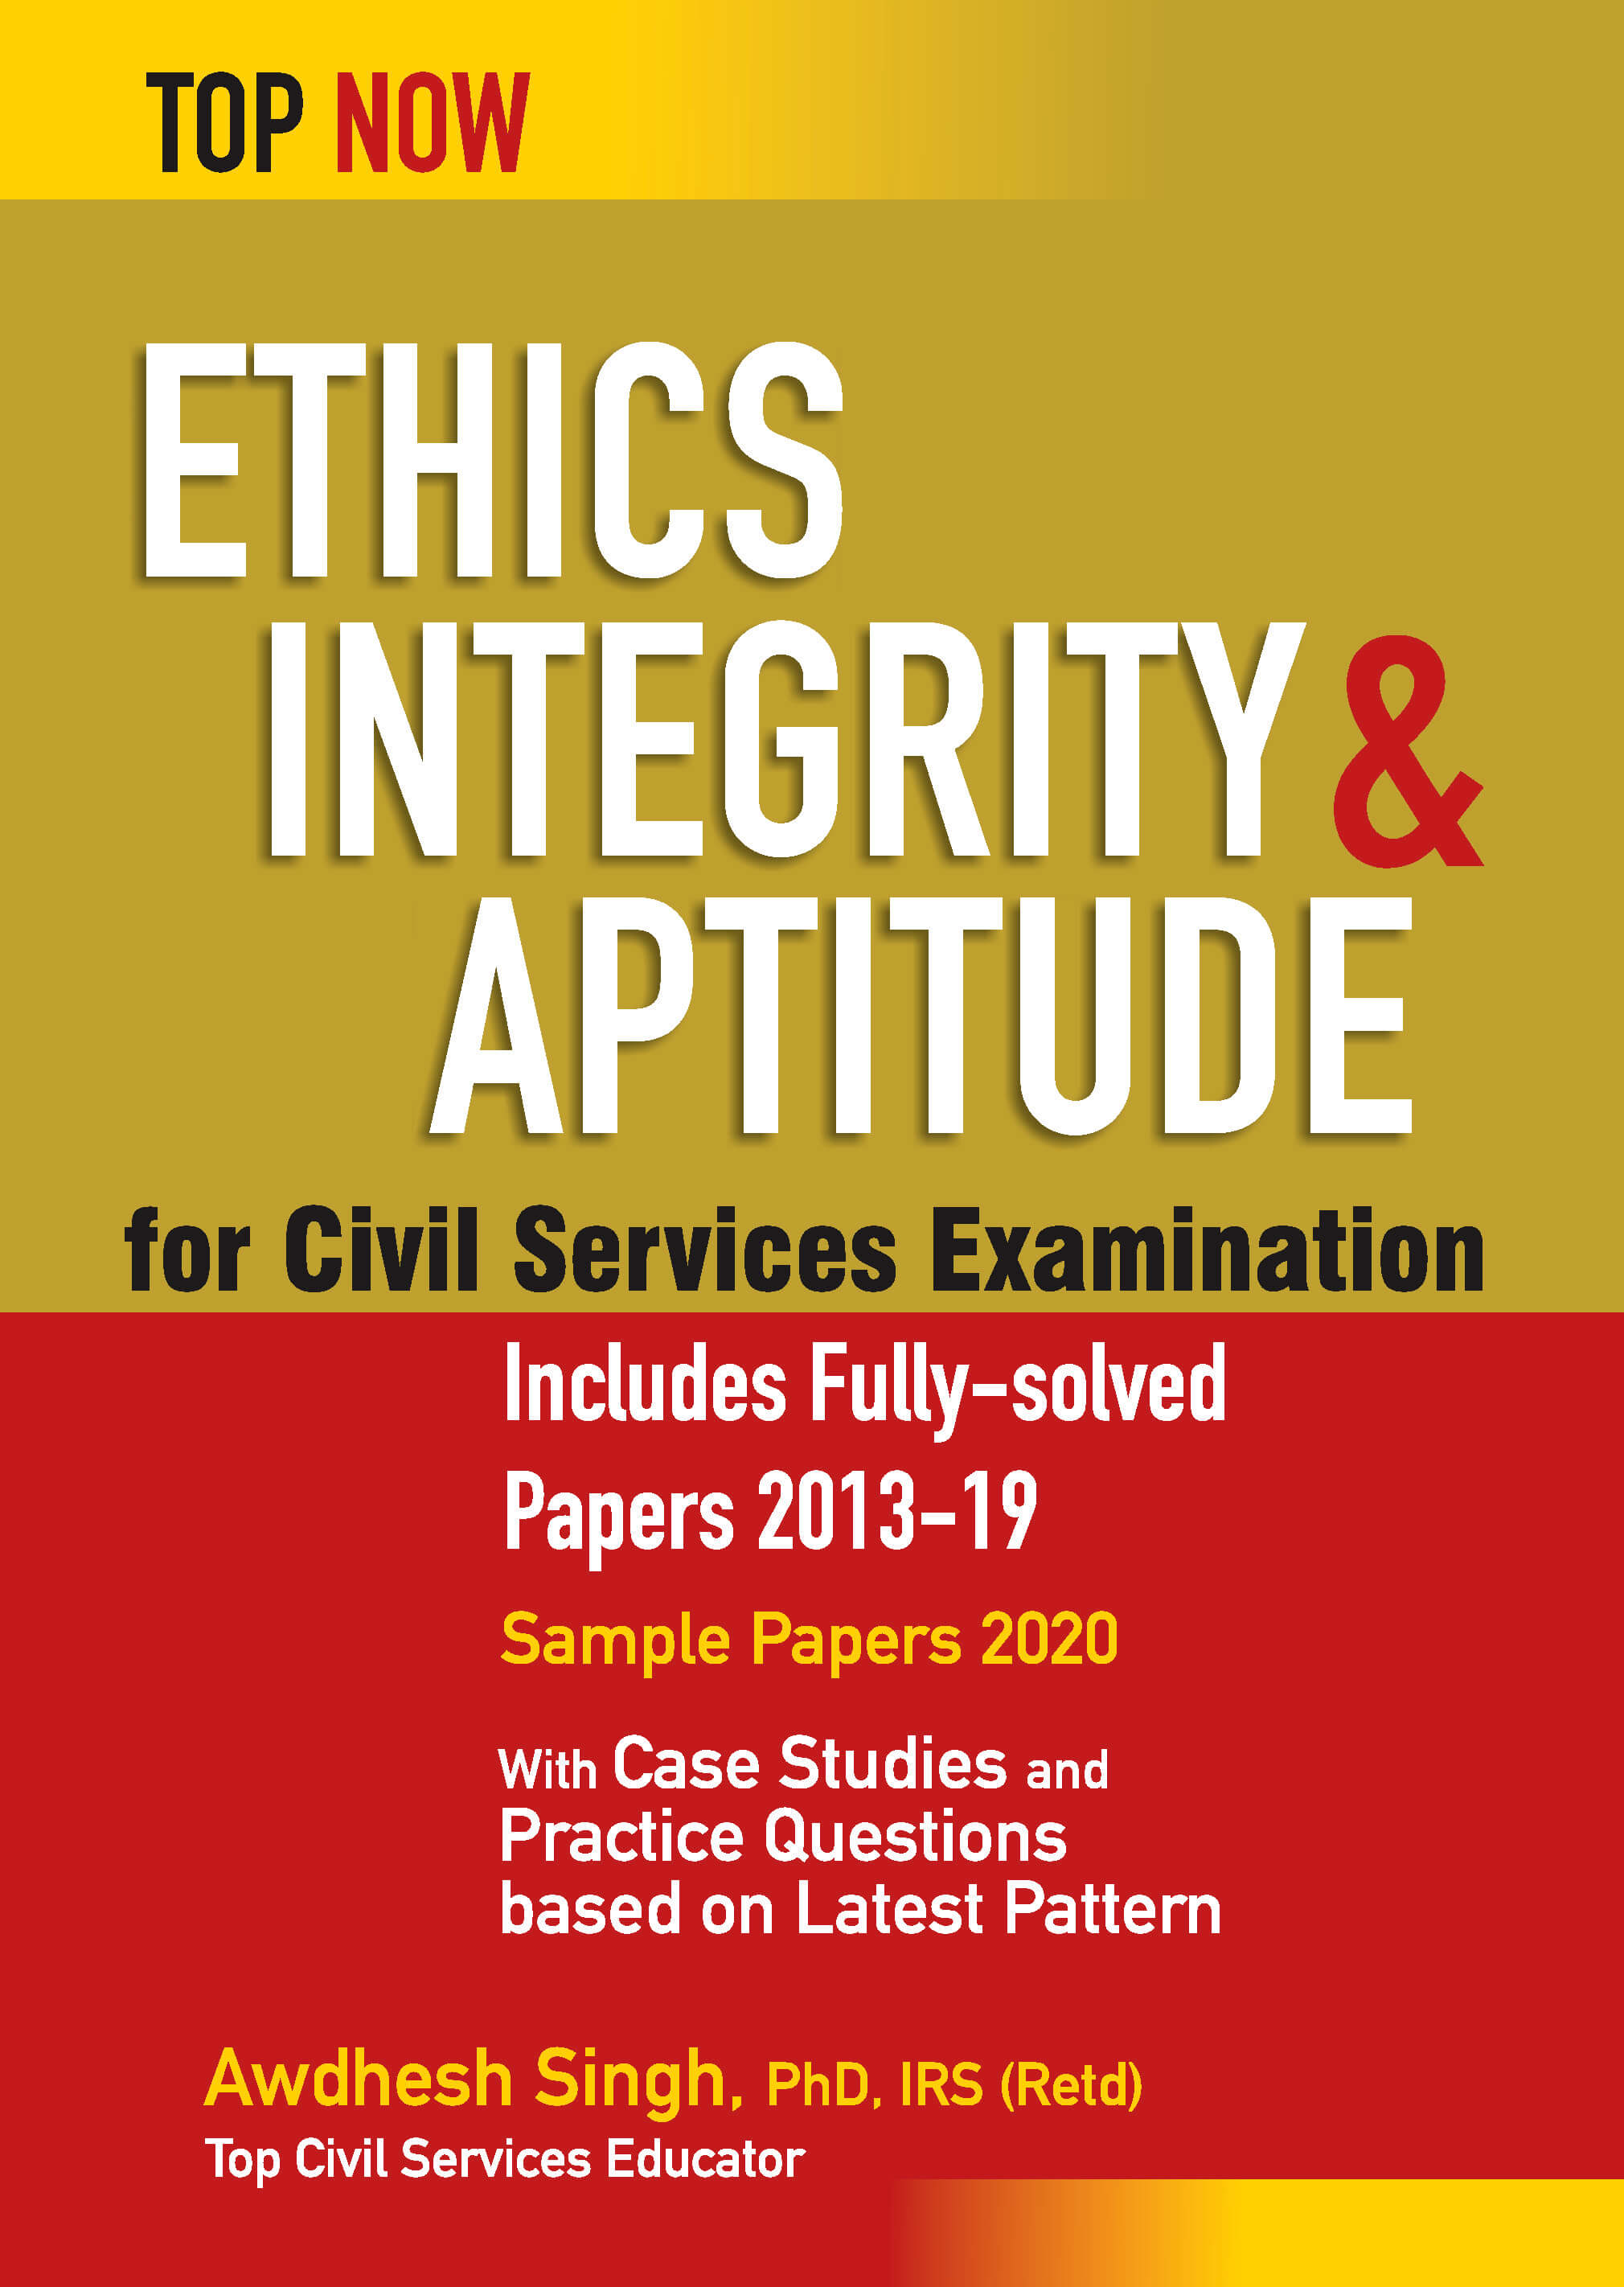 Ethics Integrity & Aptitude For Civil Services Examination: Includes Fully-Solved Papers 2013-19 (Top Now)